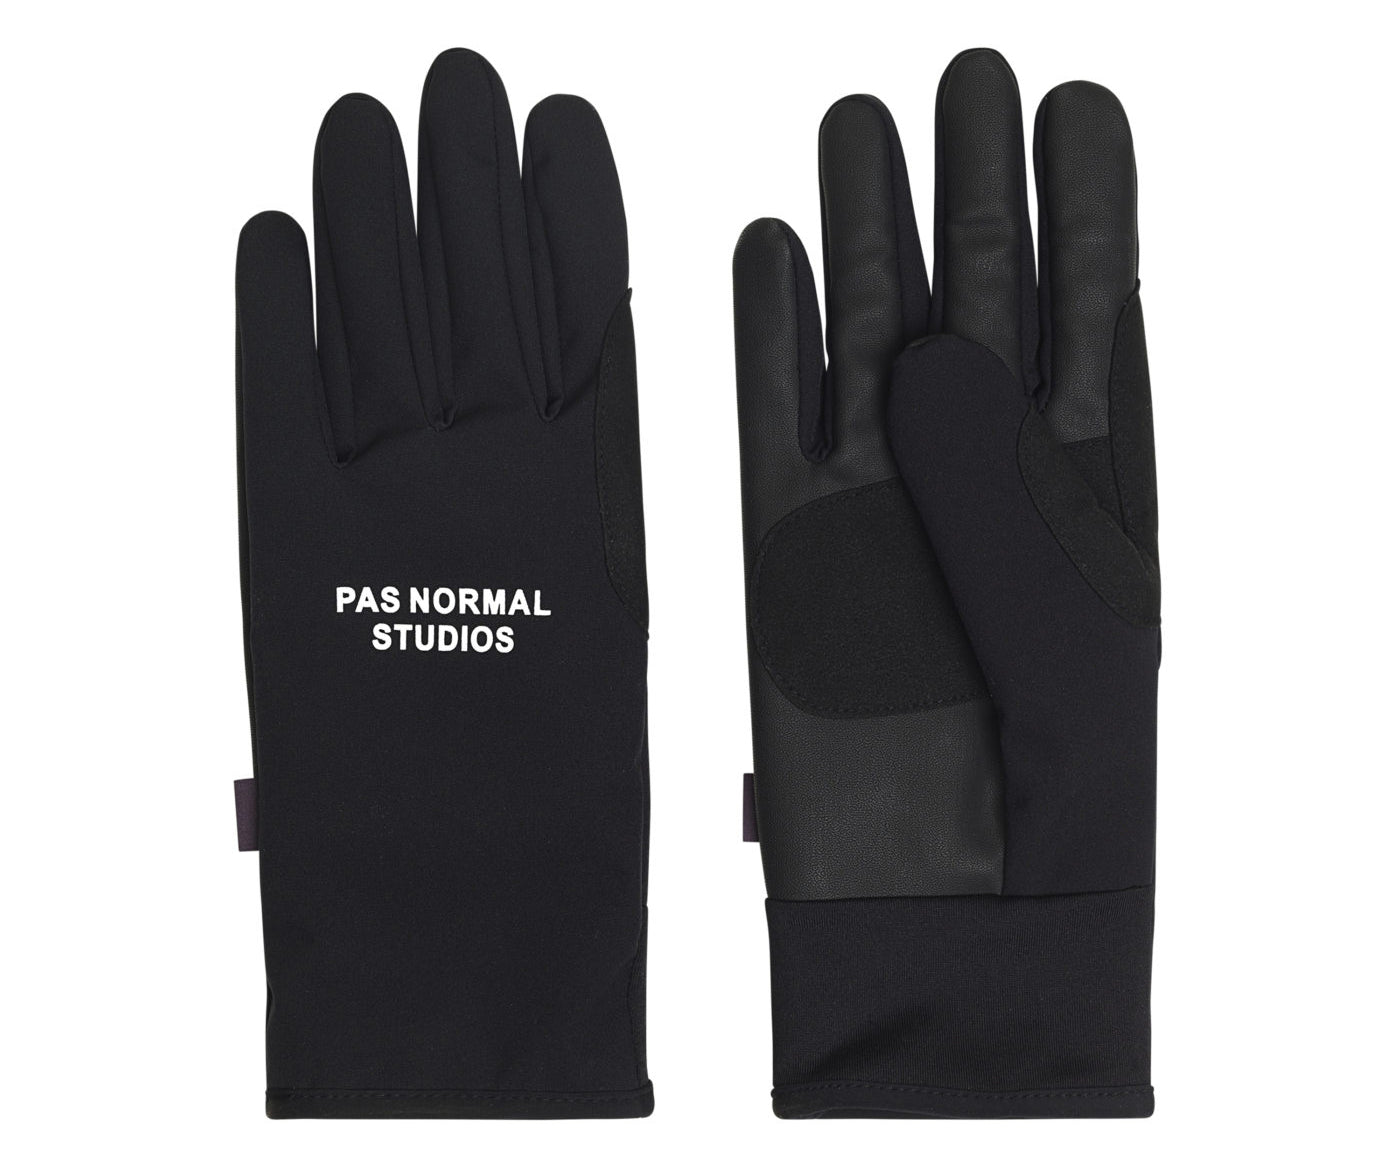 Pas Normal Gloves